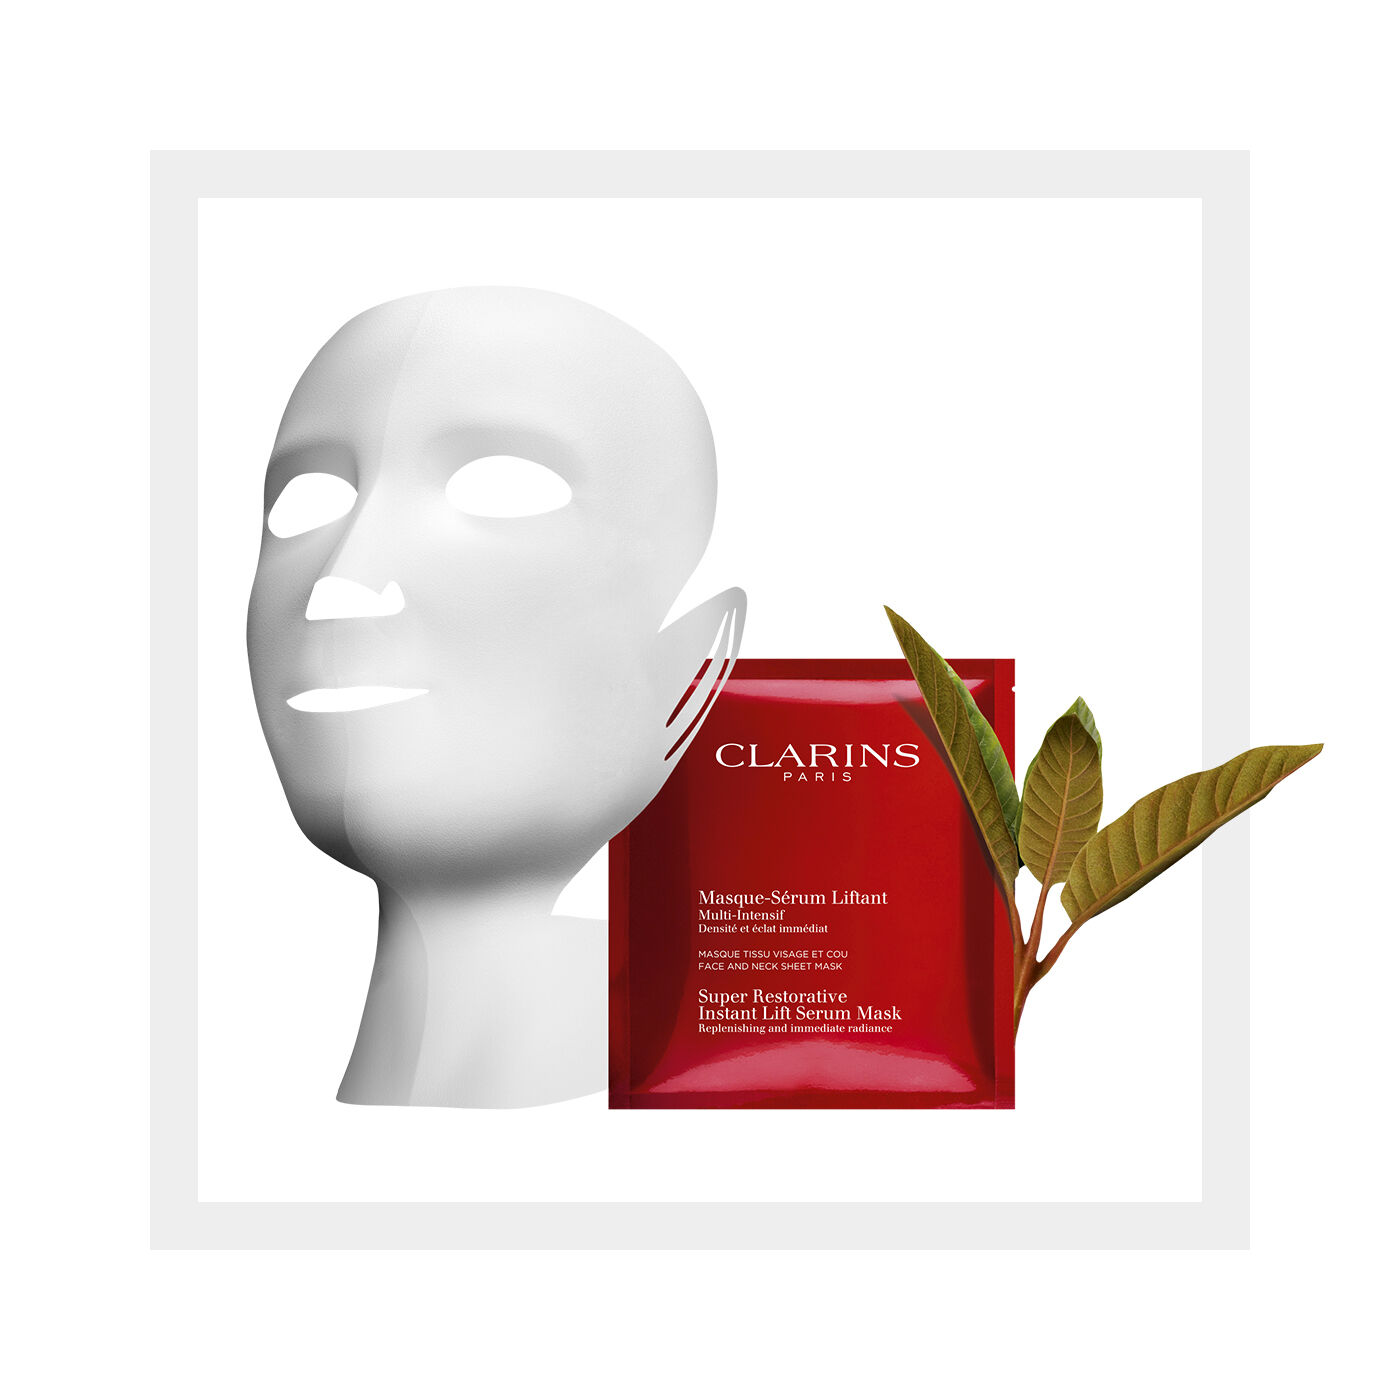 Masque-Sérum Liftant Anti-Age Vliesmaske